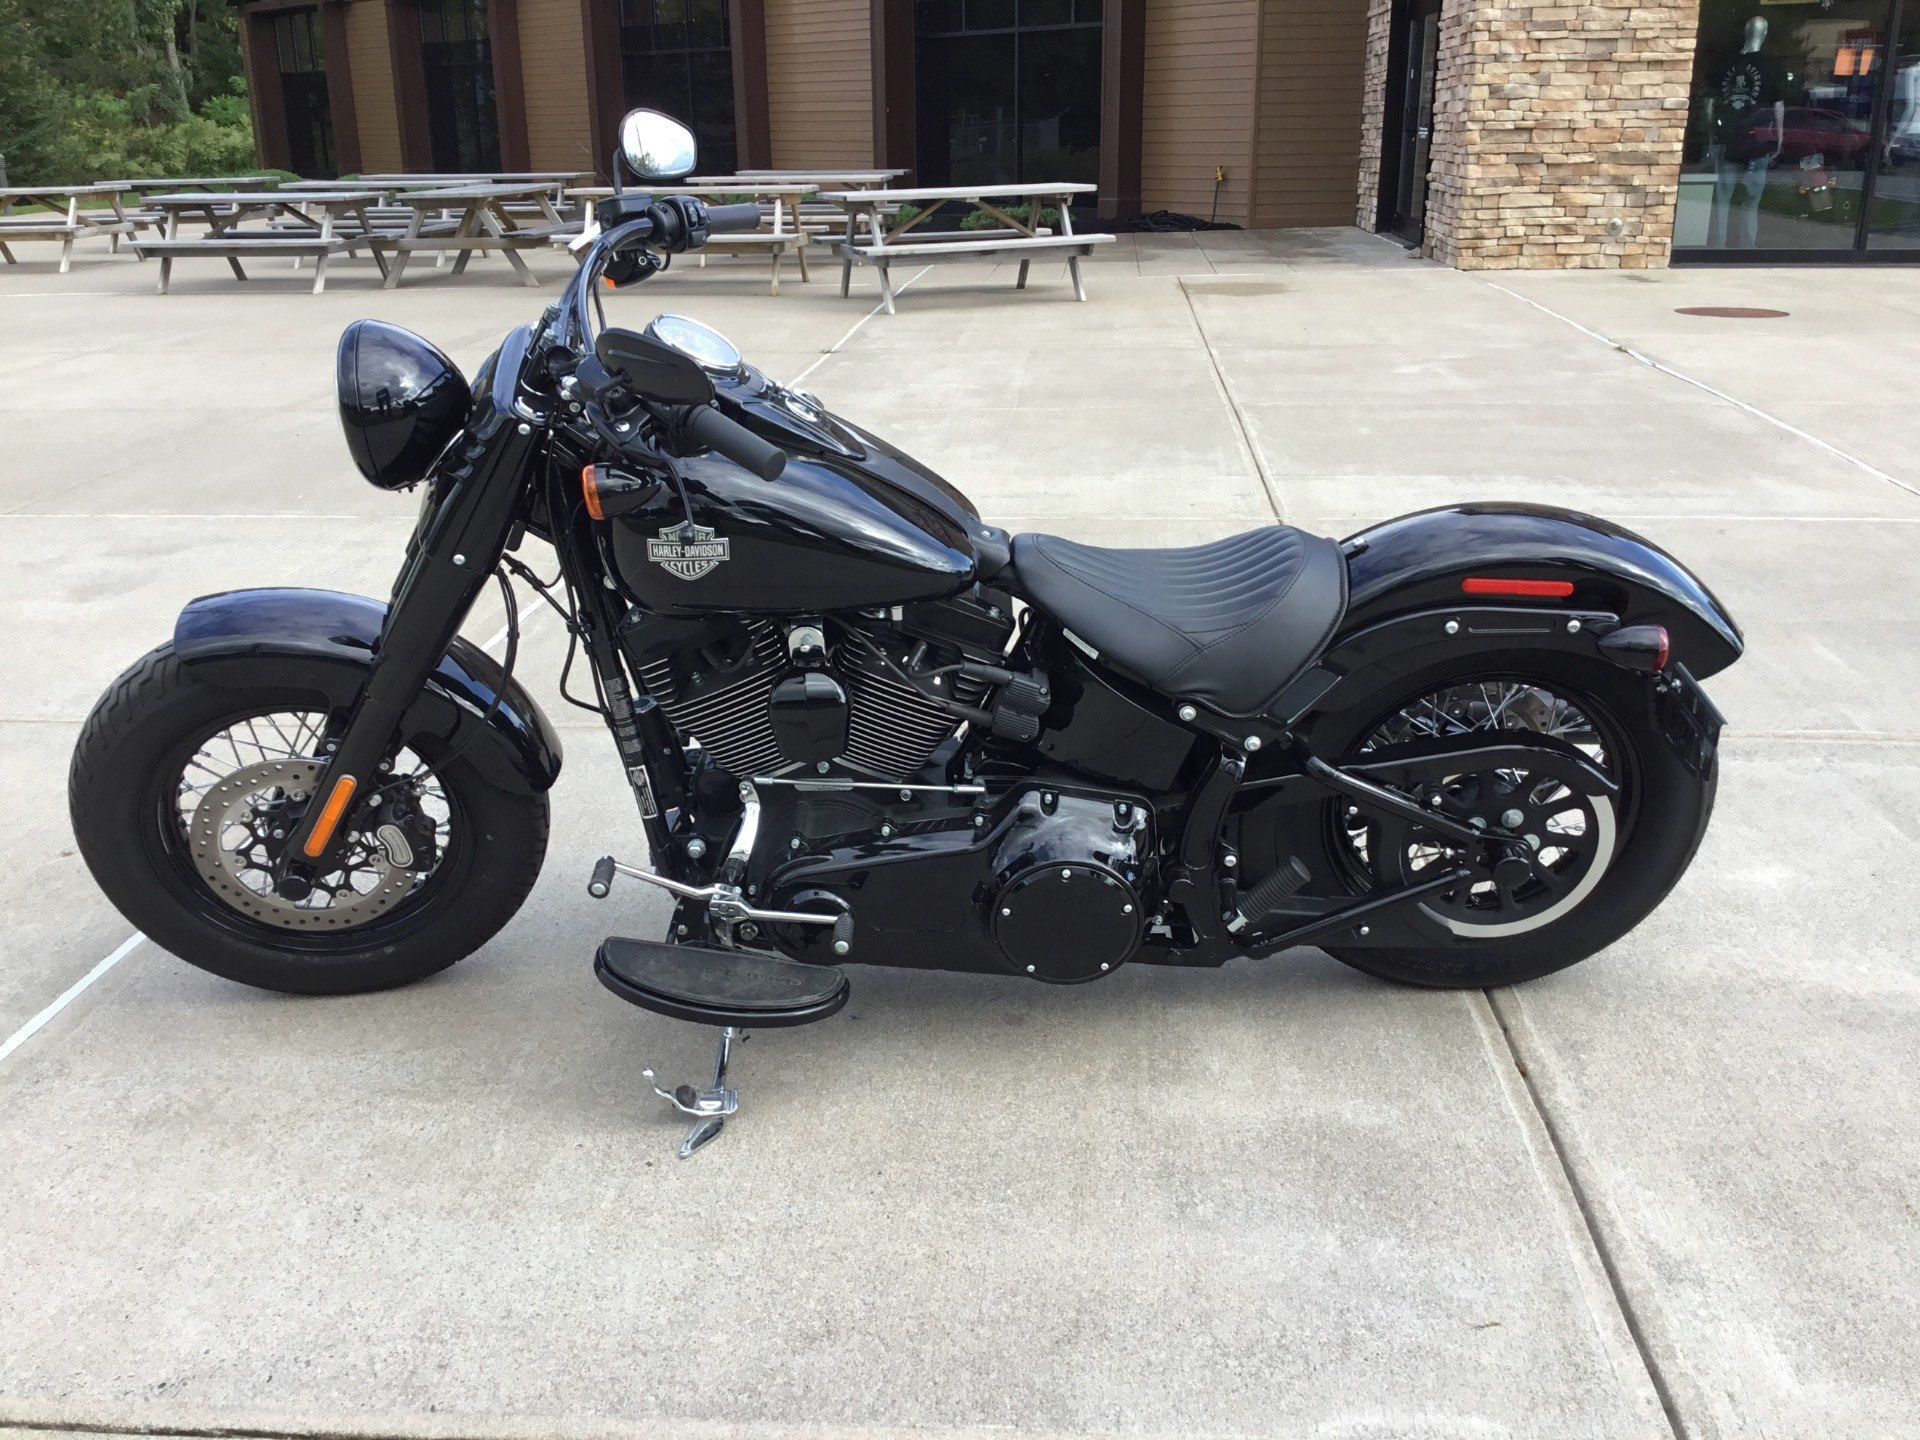 Used 2017 Harley-Davidson Softail Slim® S Motorcycles in New York ...